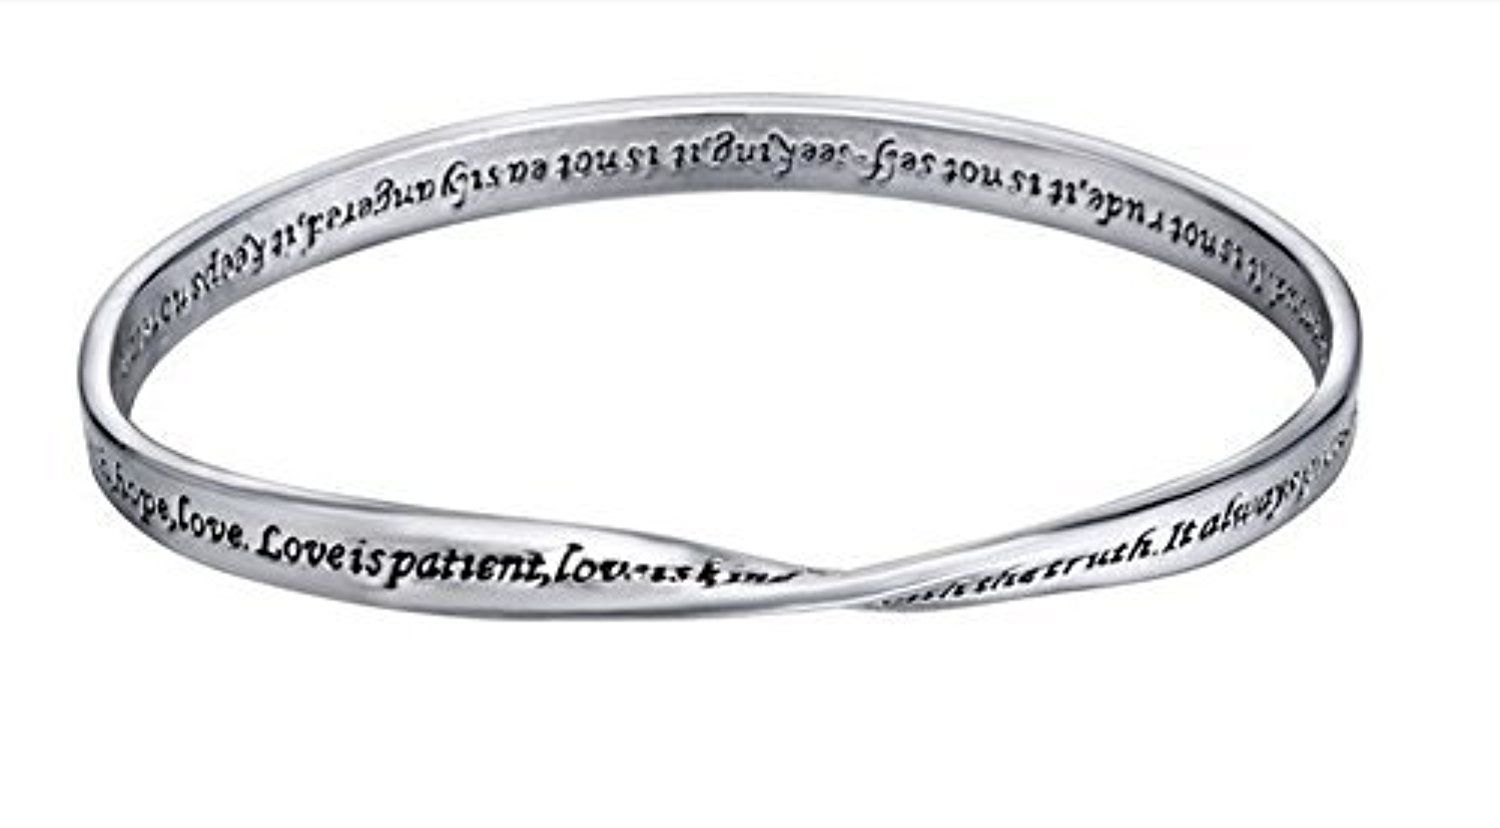 Silver Engraved Inspirational Bangle Bracelet - 1 Corinthians 13: 4-7, Love is Patient, Love is Kind... by Holy Christian Gifts -- Awesome products selected by Anna Churchill